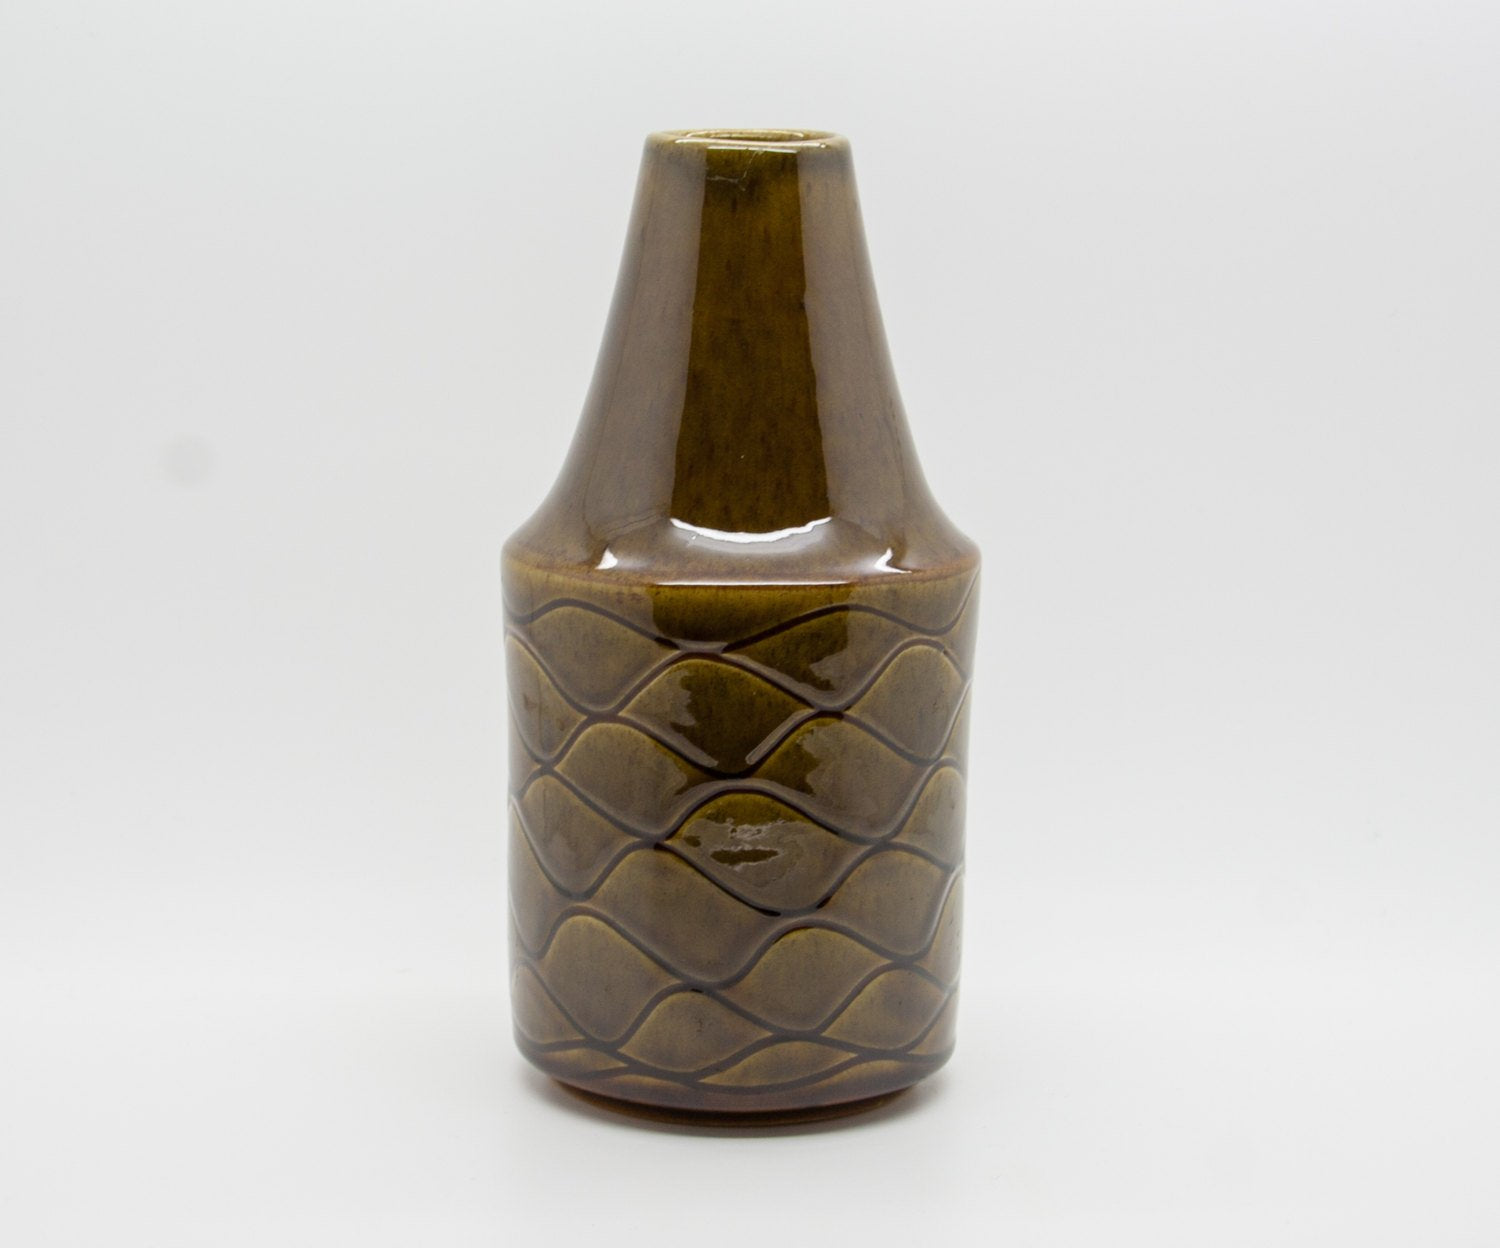 JACOB BANG Hegnetslund Green Brown Glazed Ceramic Vase - Mollaris.com